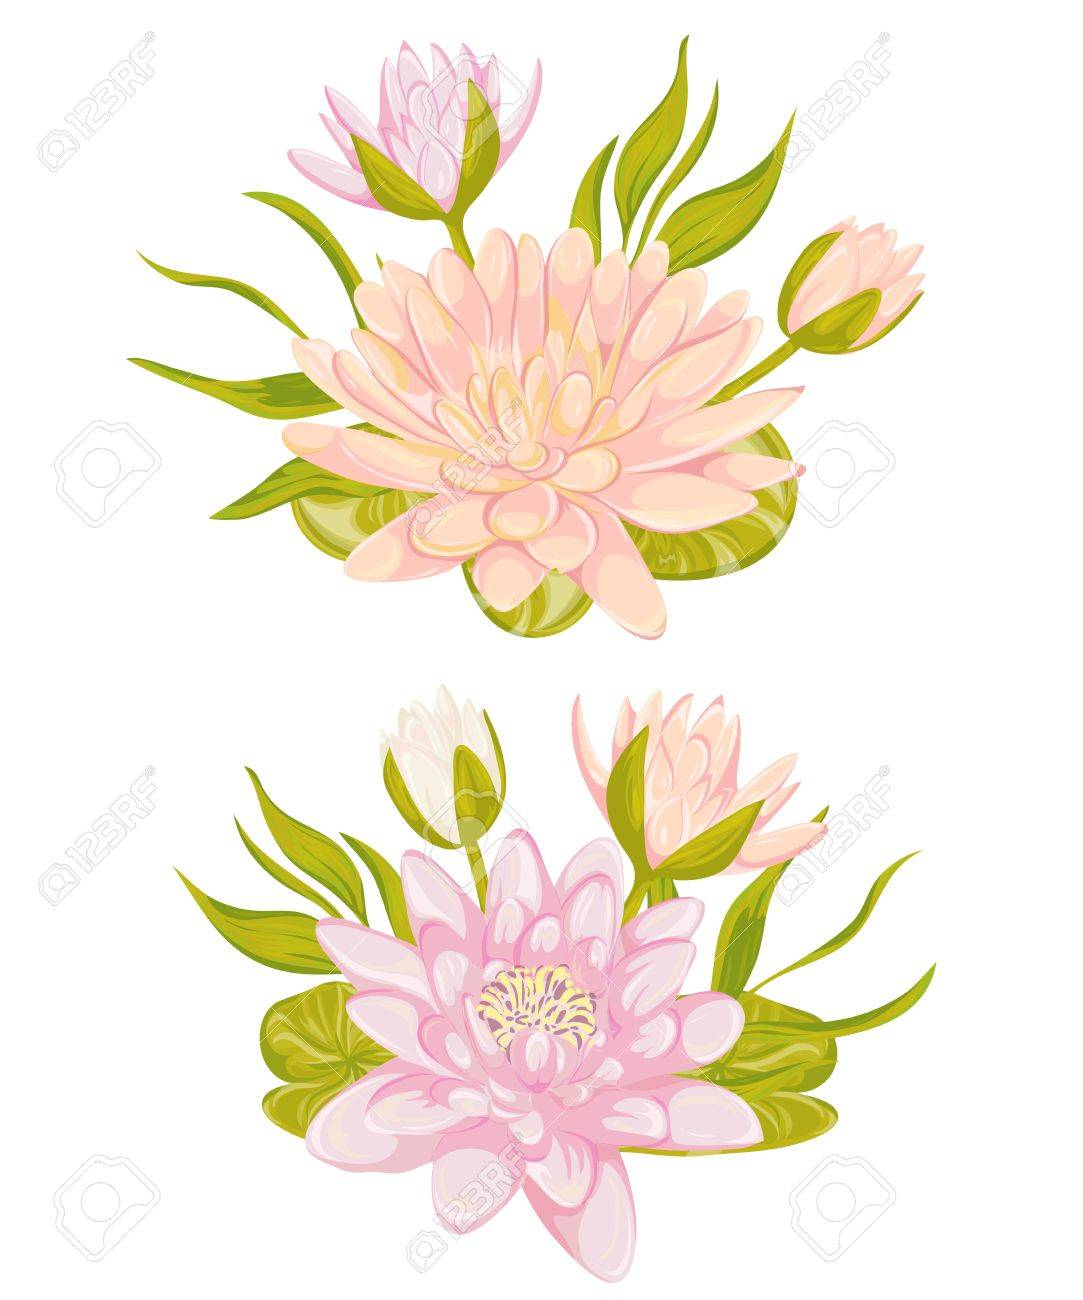 Water lily set collection decorative design elements for wedding collection decorative design elements for wedding invitations and birthday cards flowers leaves and buds vintage hand drawn vector illustration in izmirmasajfo